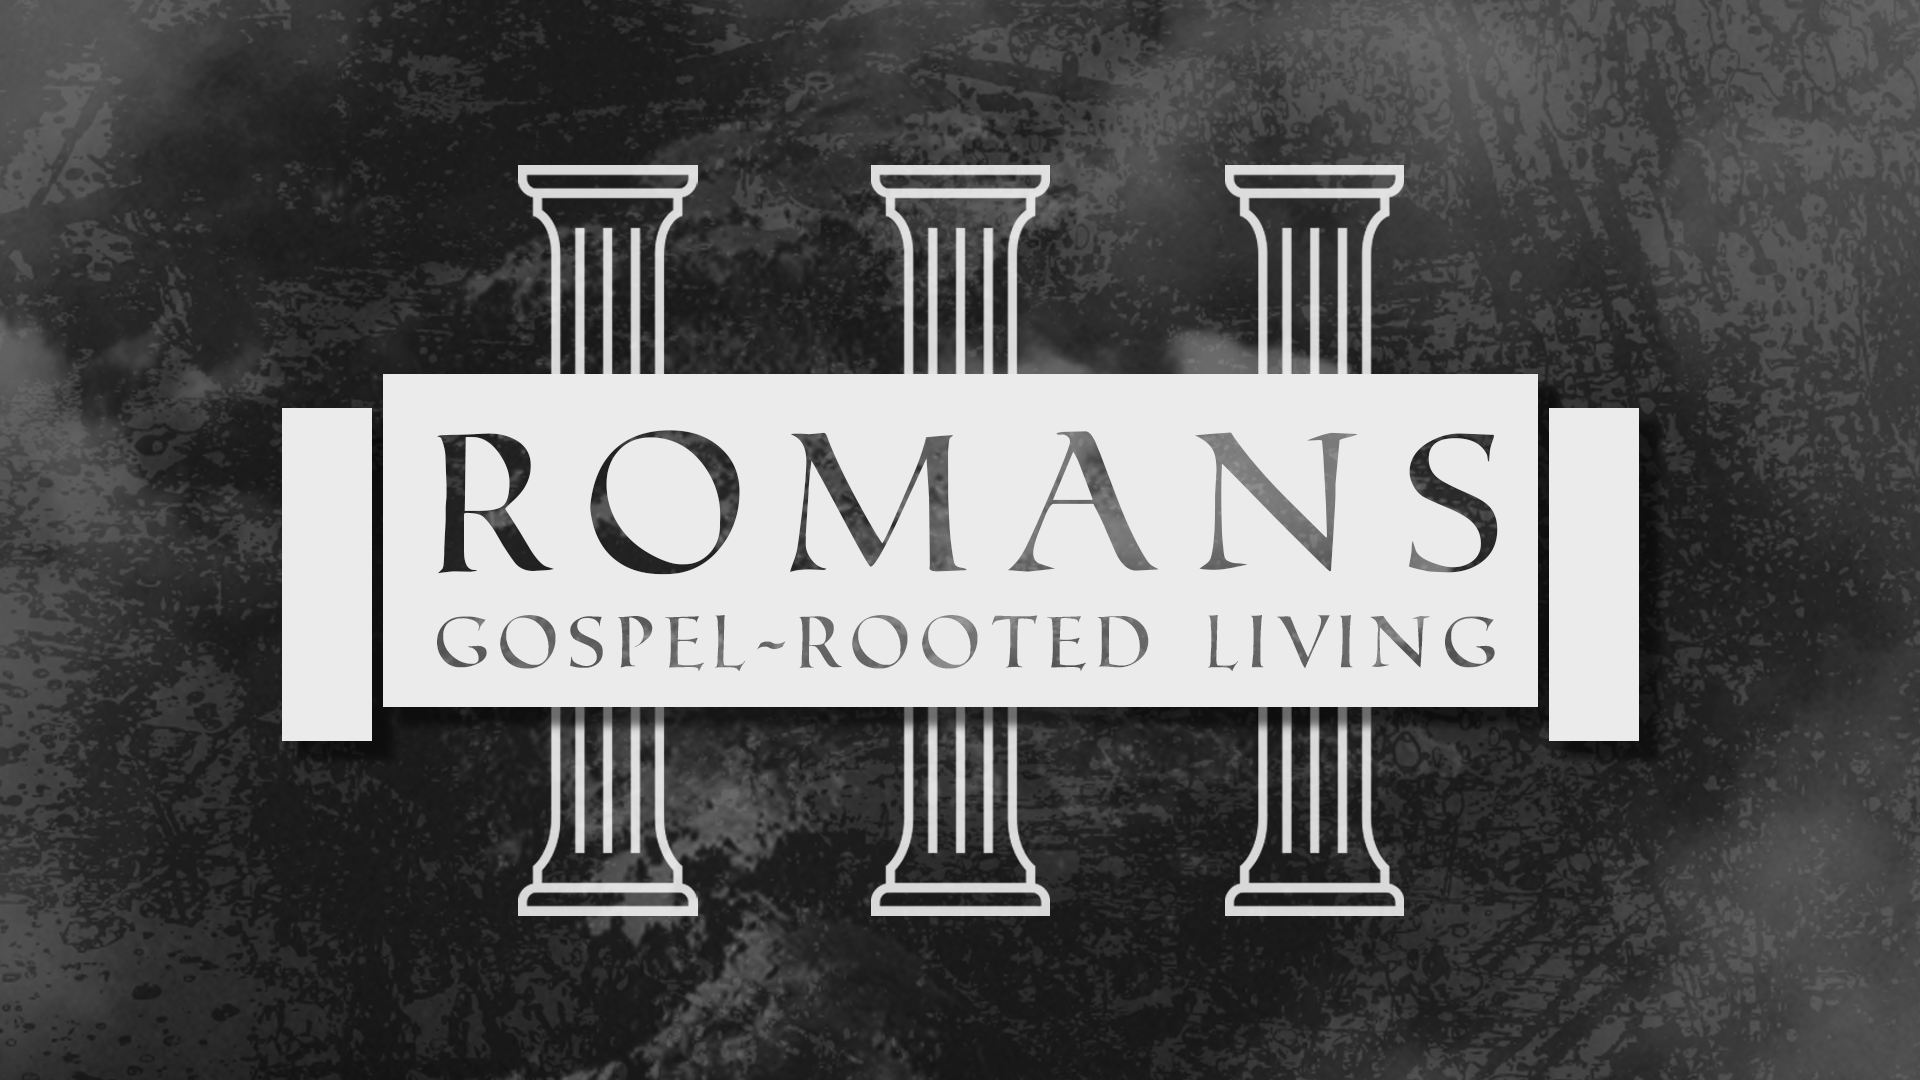 January 26th, 2020 – Romans: Gospel-Rooted Living